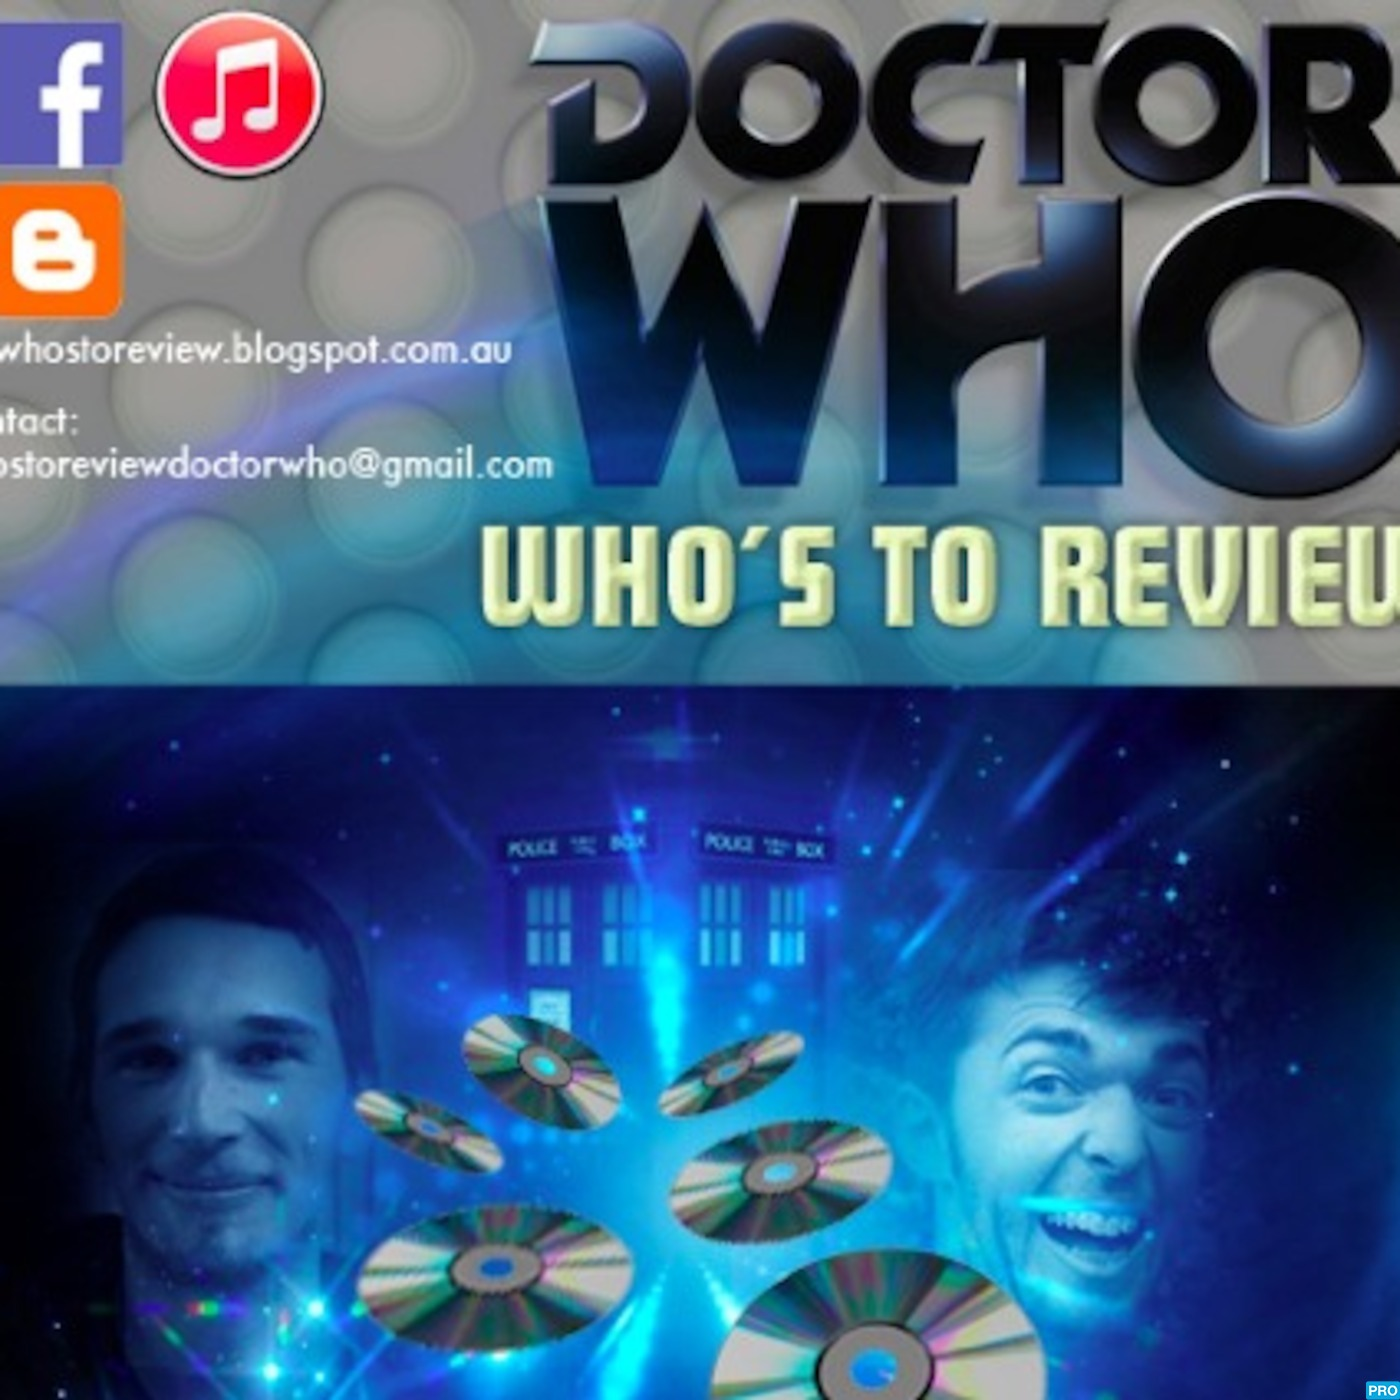 Who's To Review - Classic Doctor Who